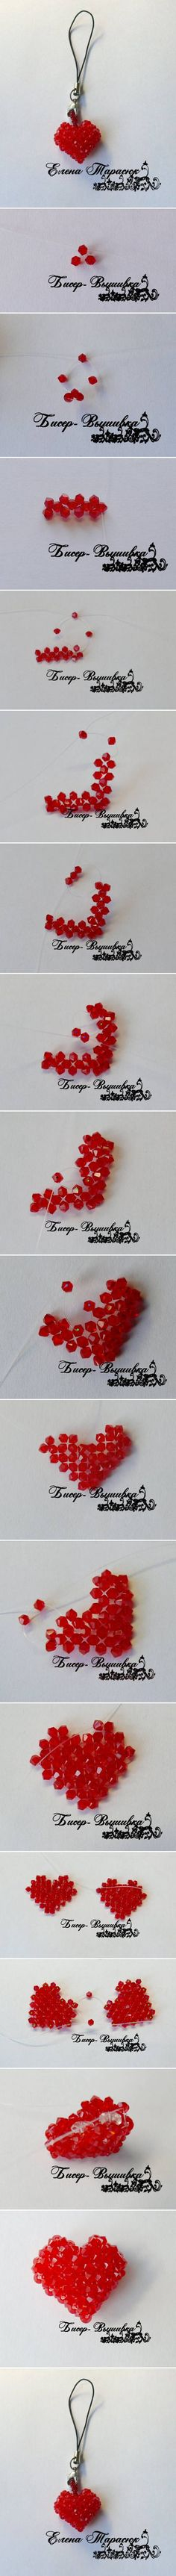 DIY Beads Heart Ornament